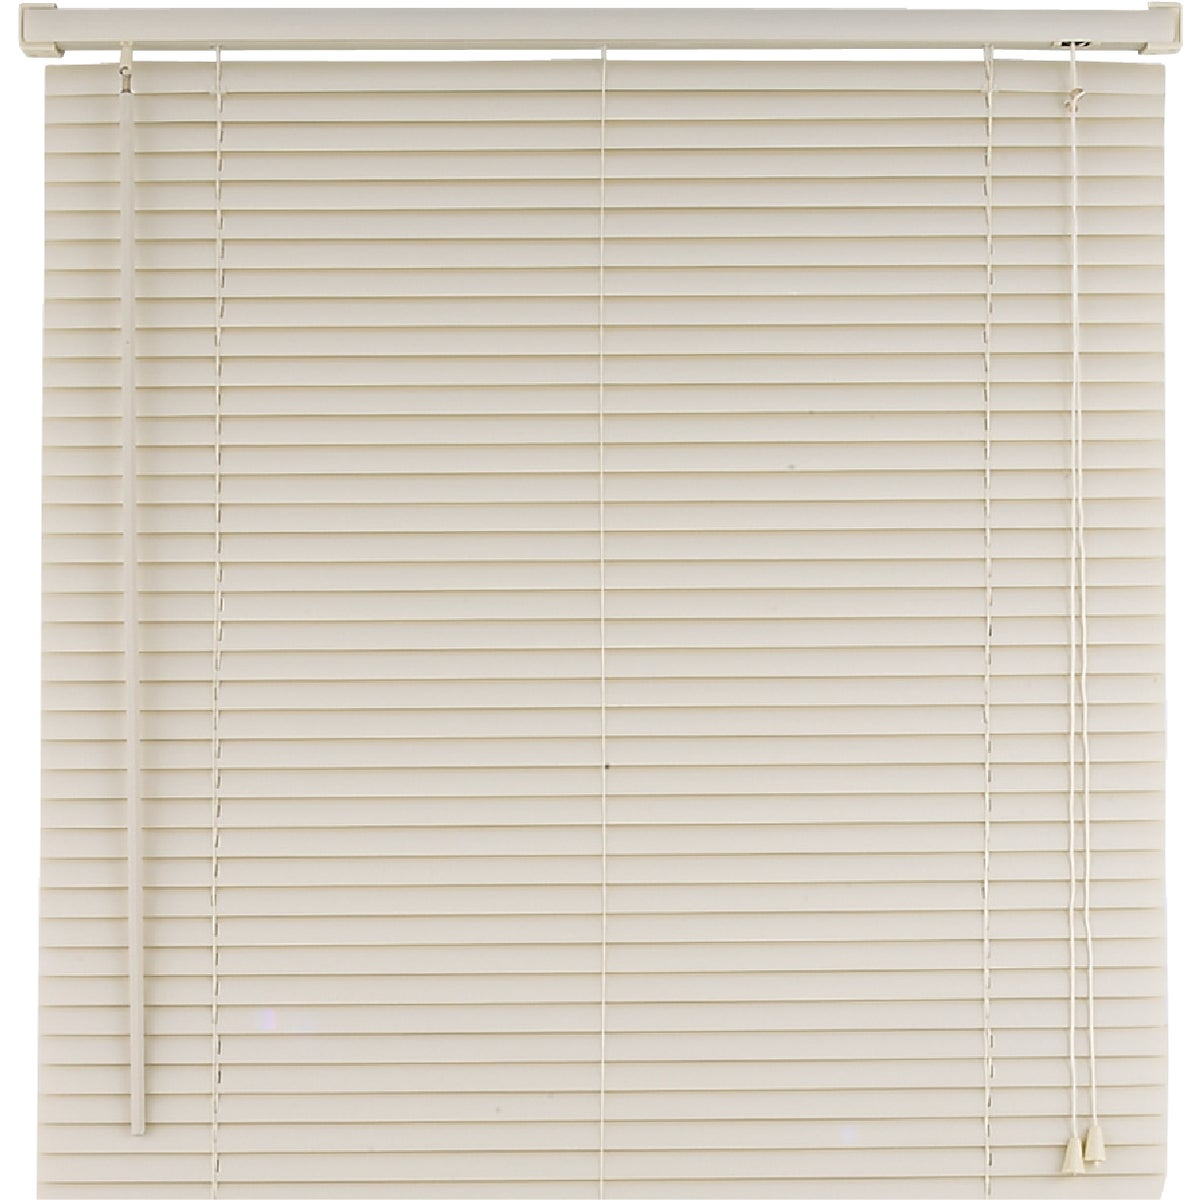 48X64 ALABASTER BLIND - 15228 by Lotus Wind Incom